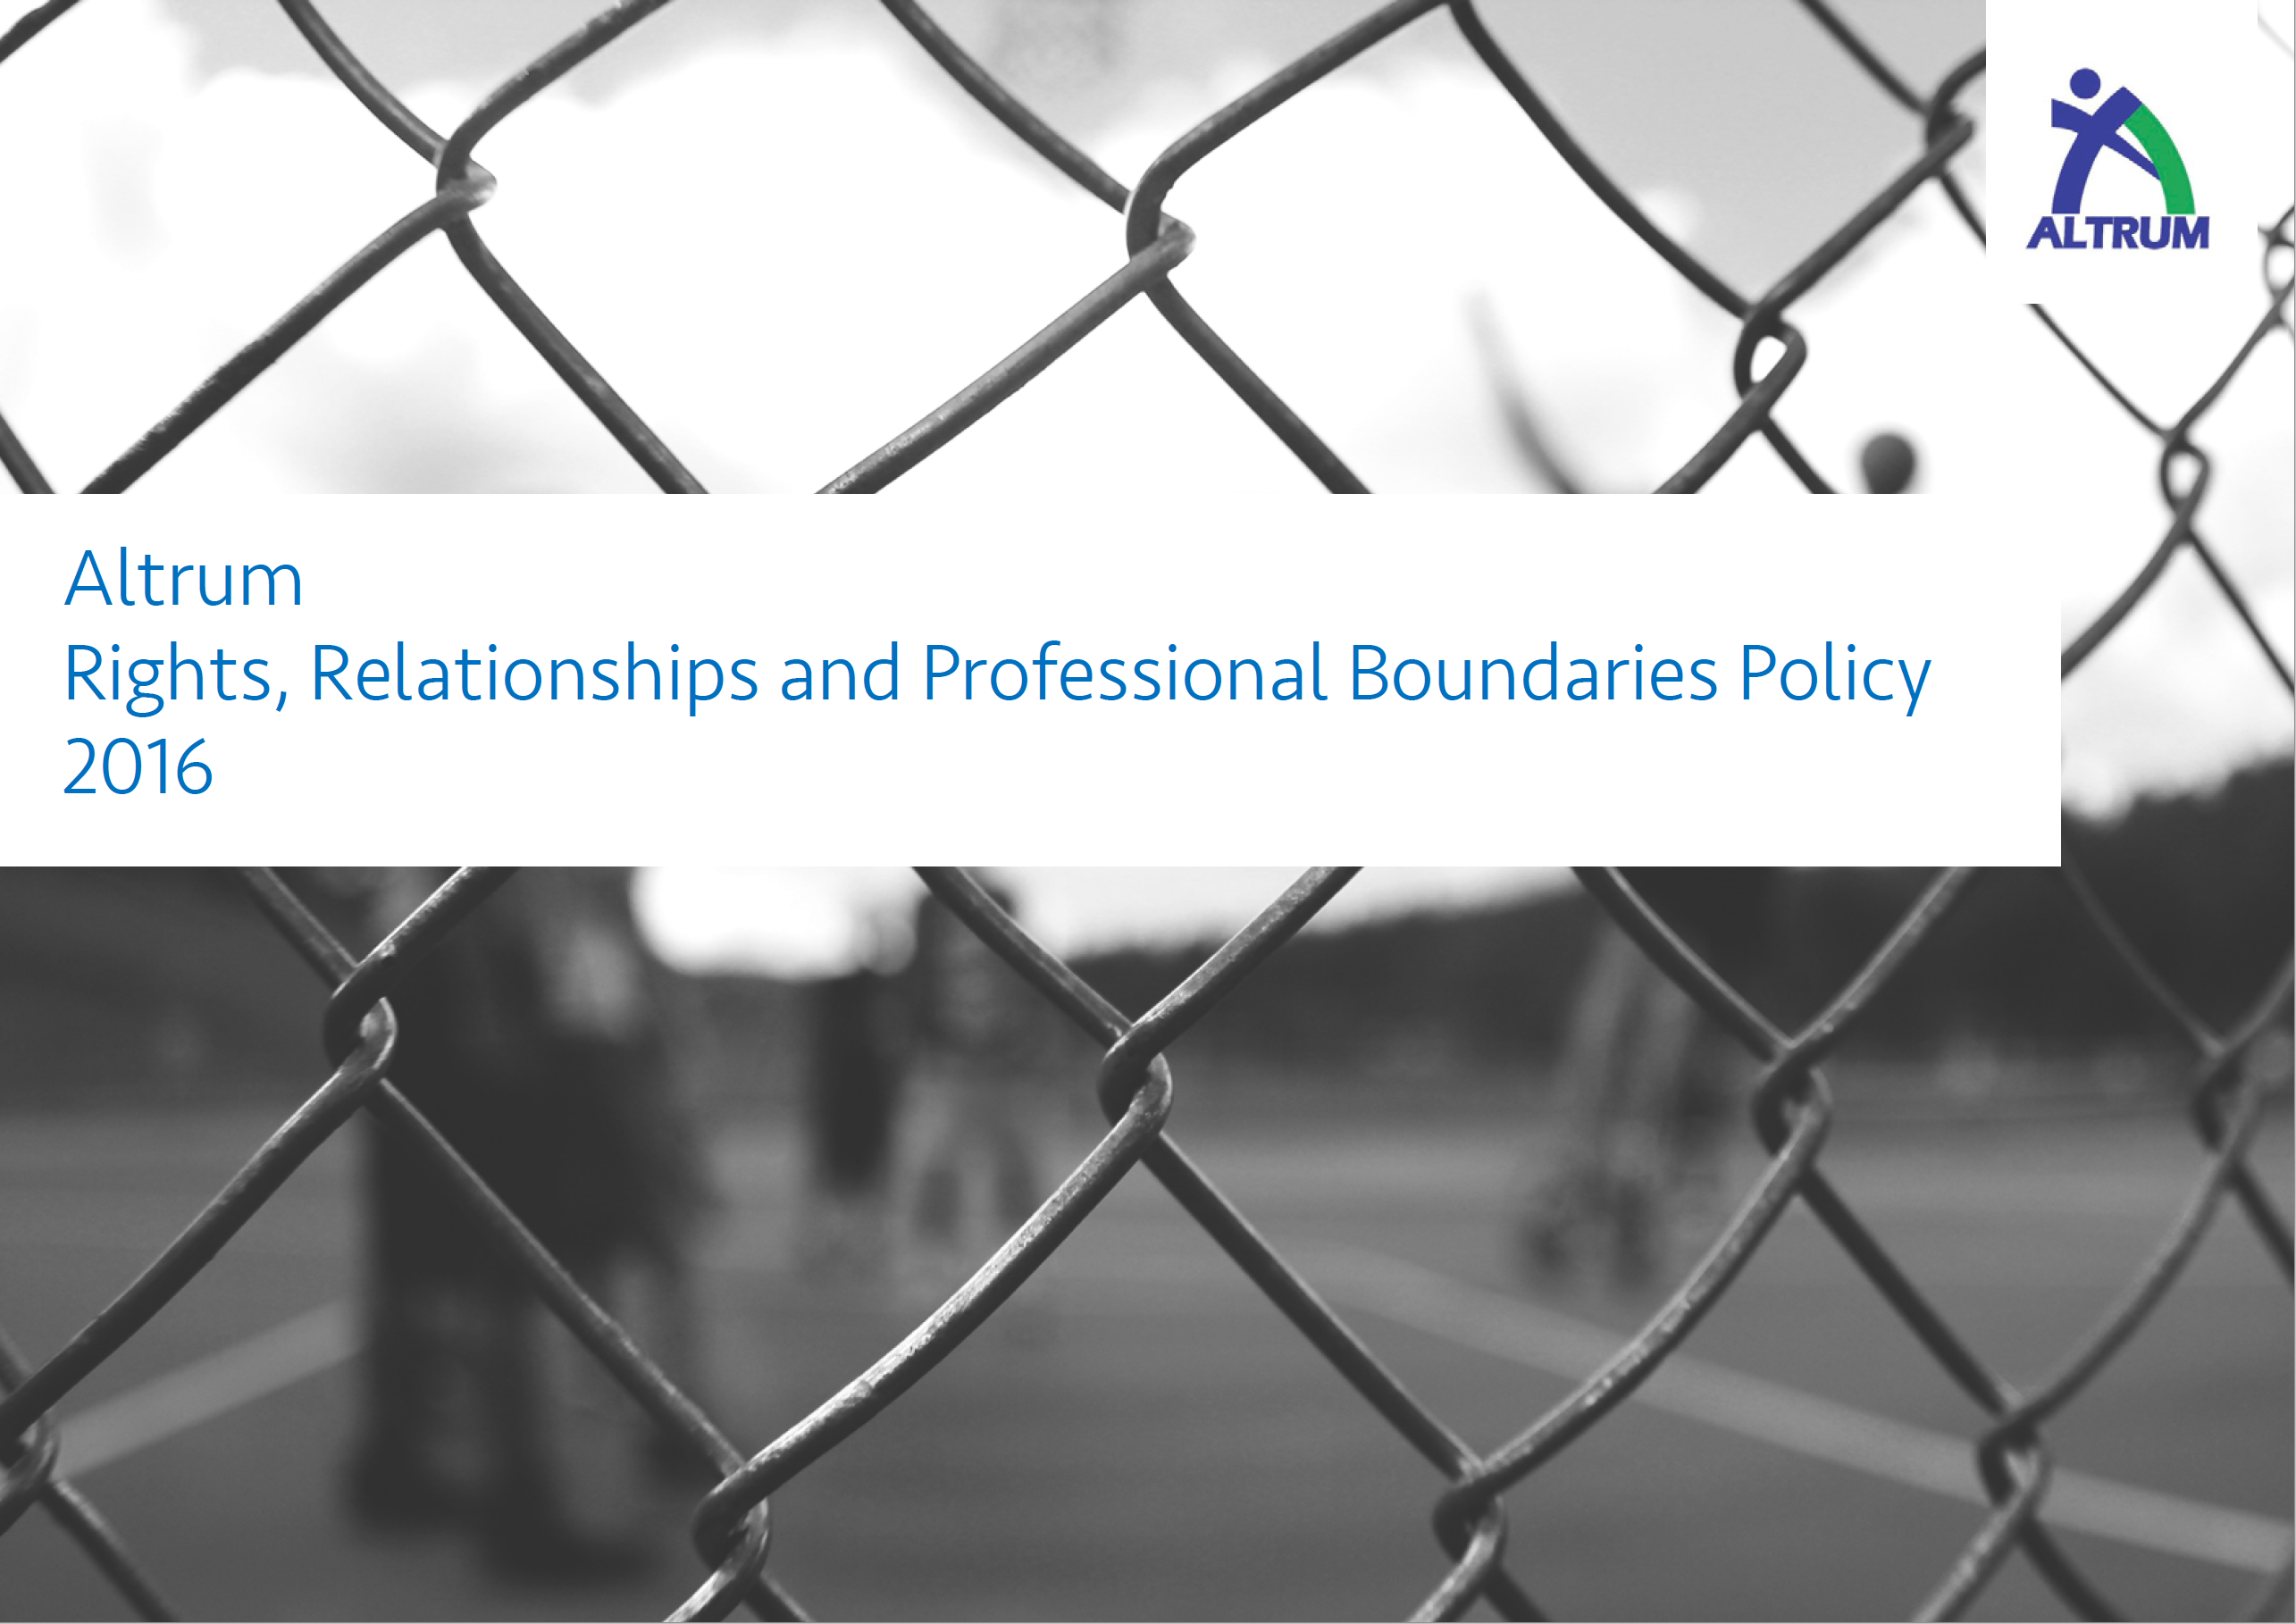 Rights, Relationships and Professional Boundaries Policy